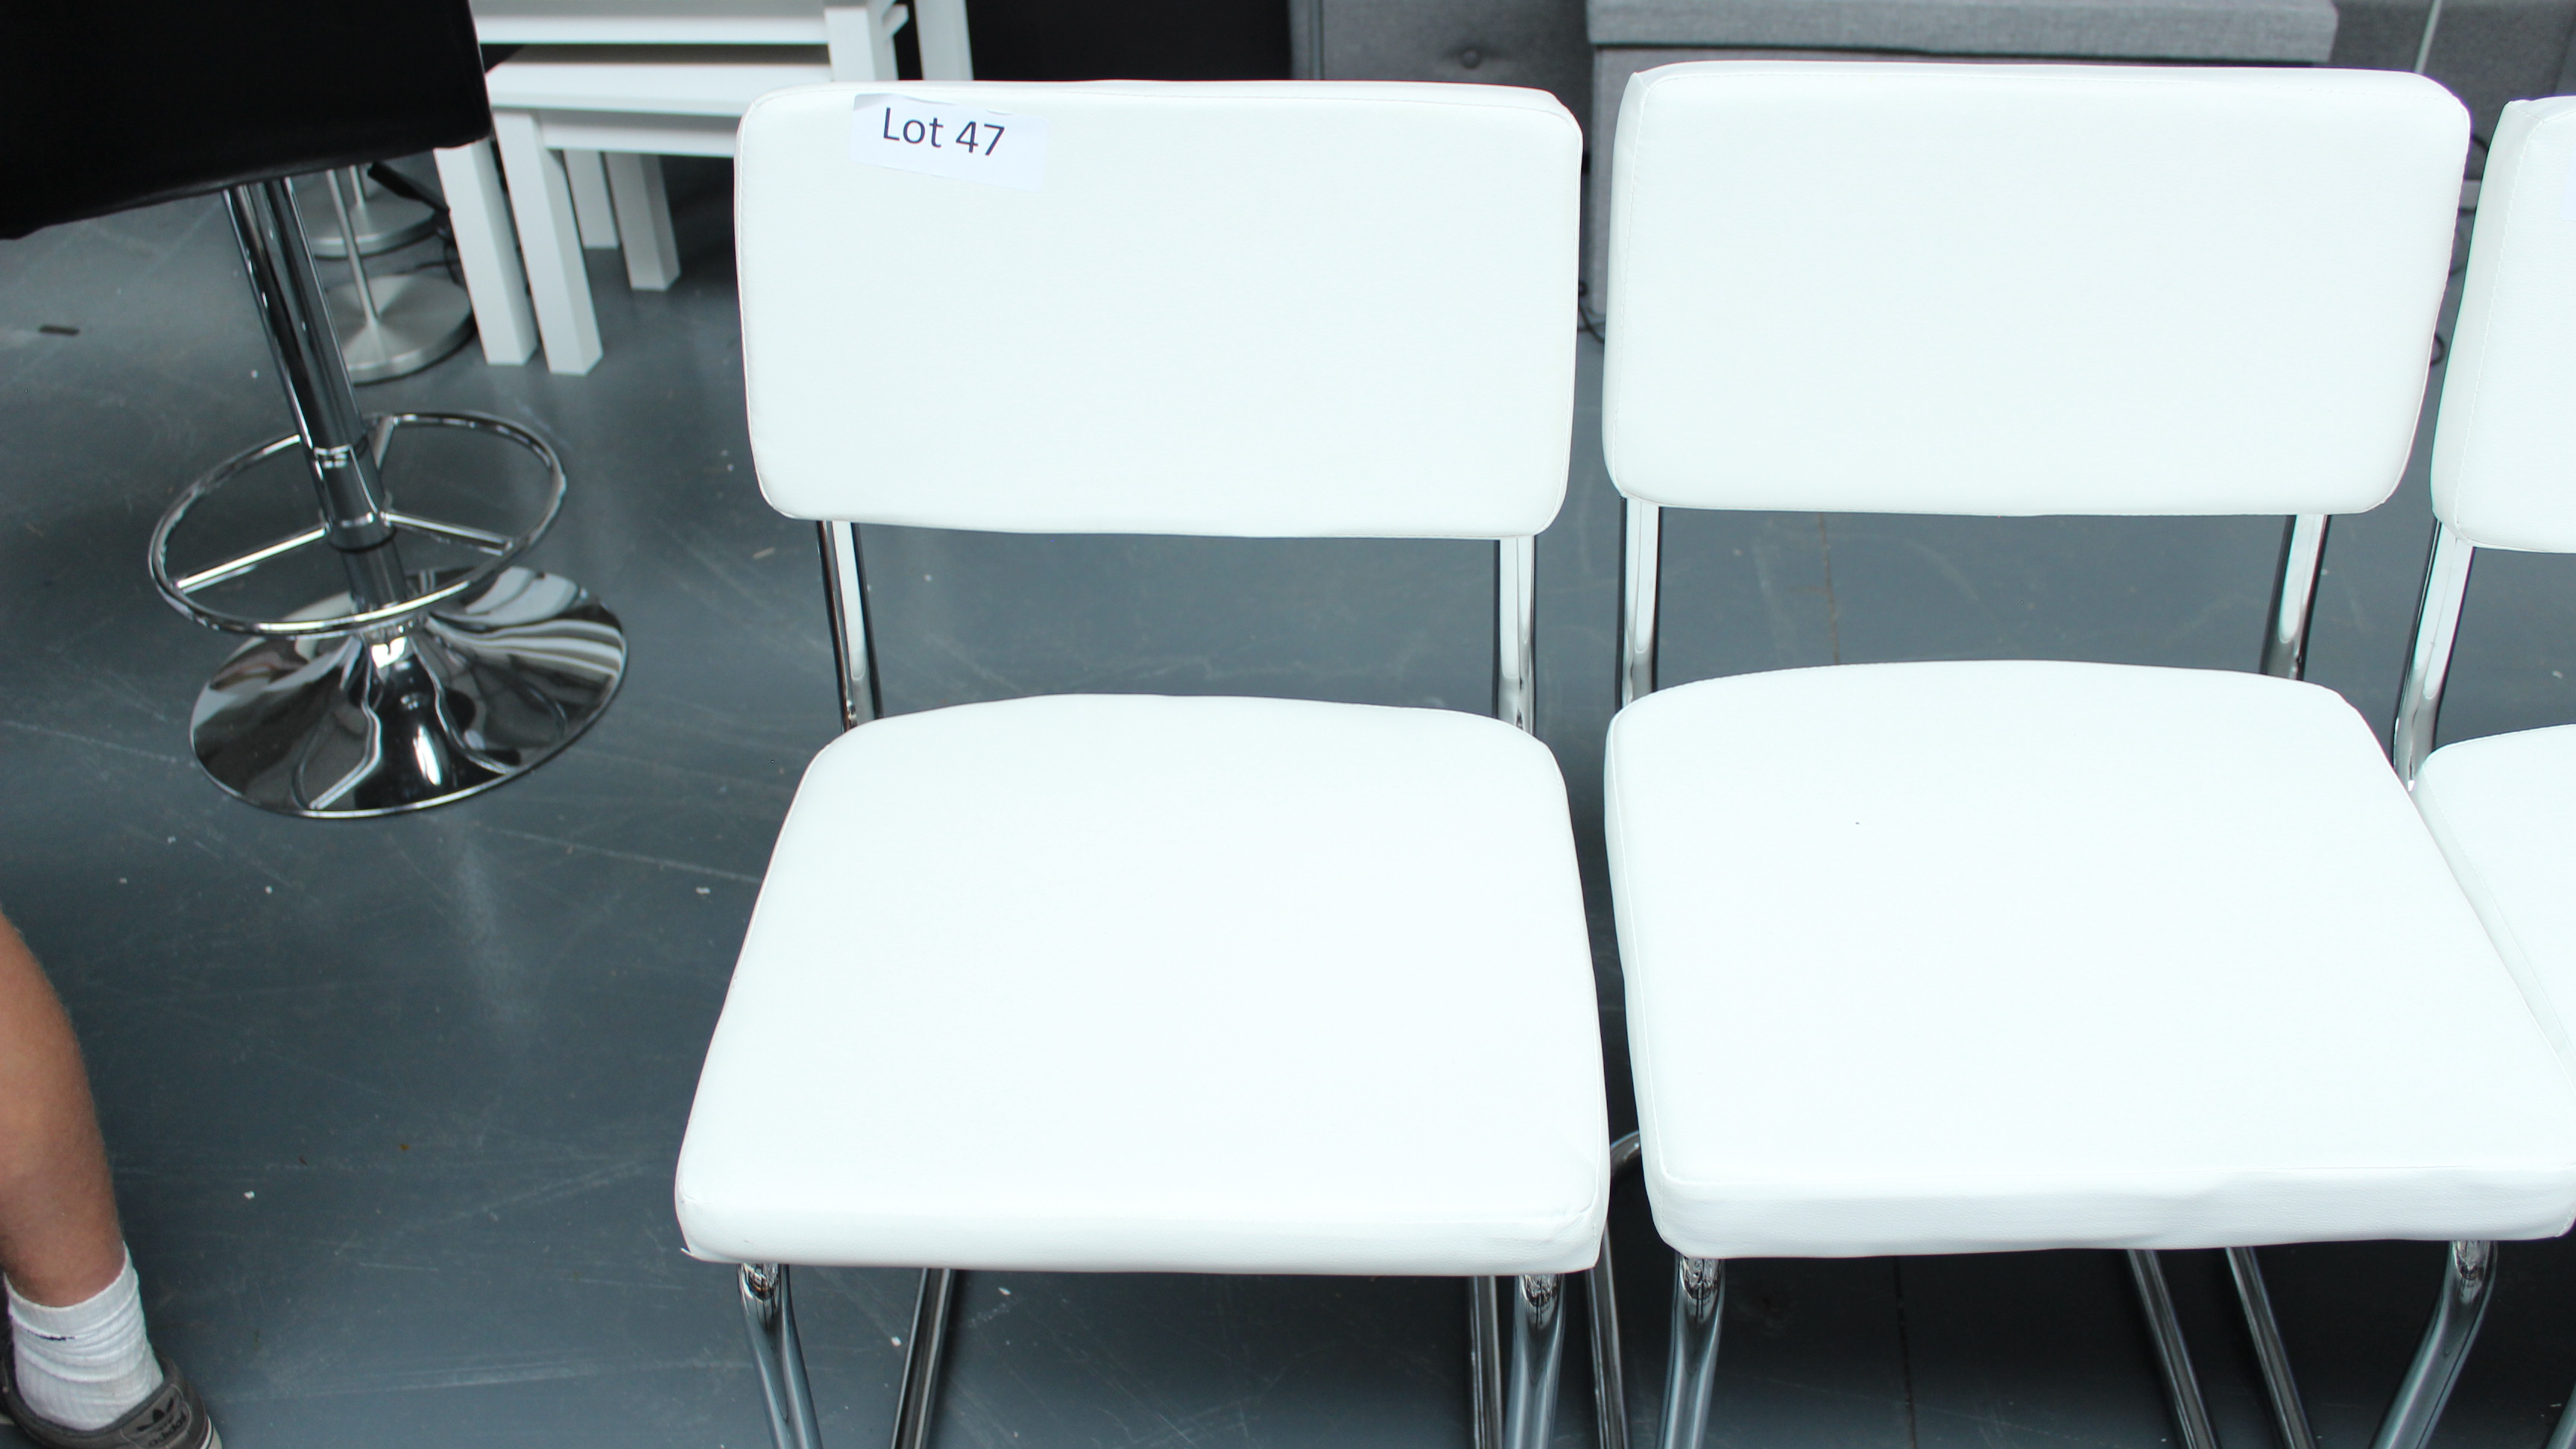 Lot 47 - 2 White & Chrome Chairs. New